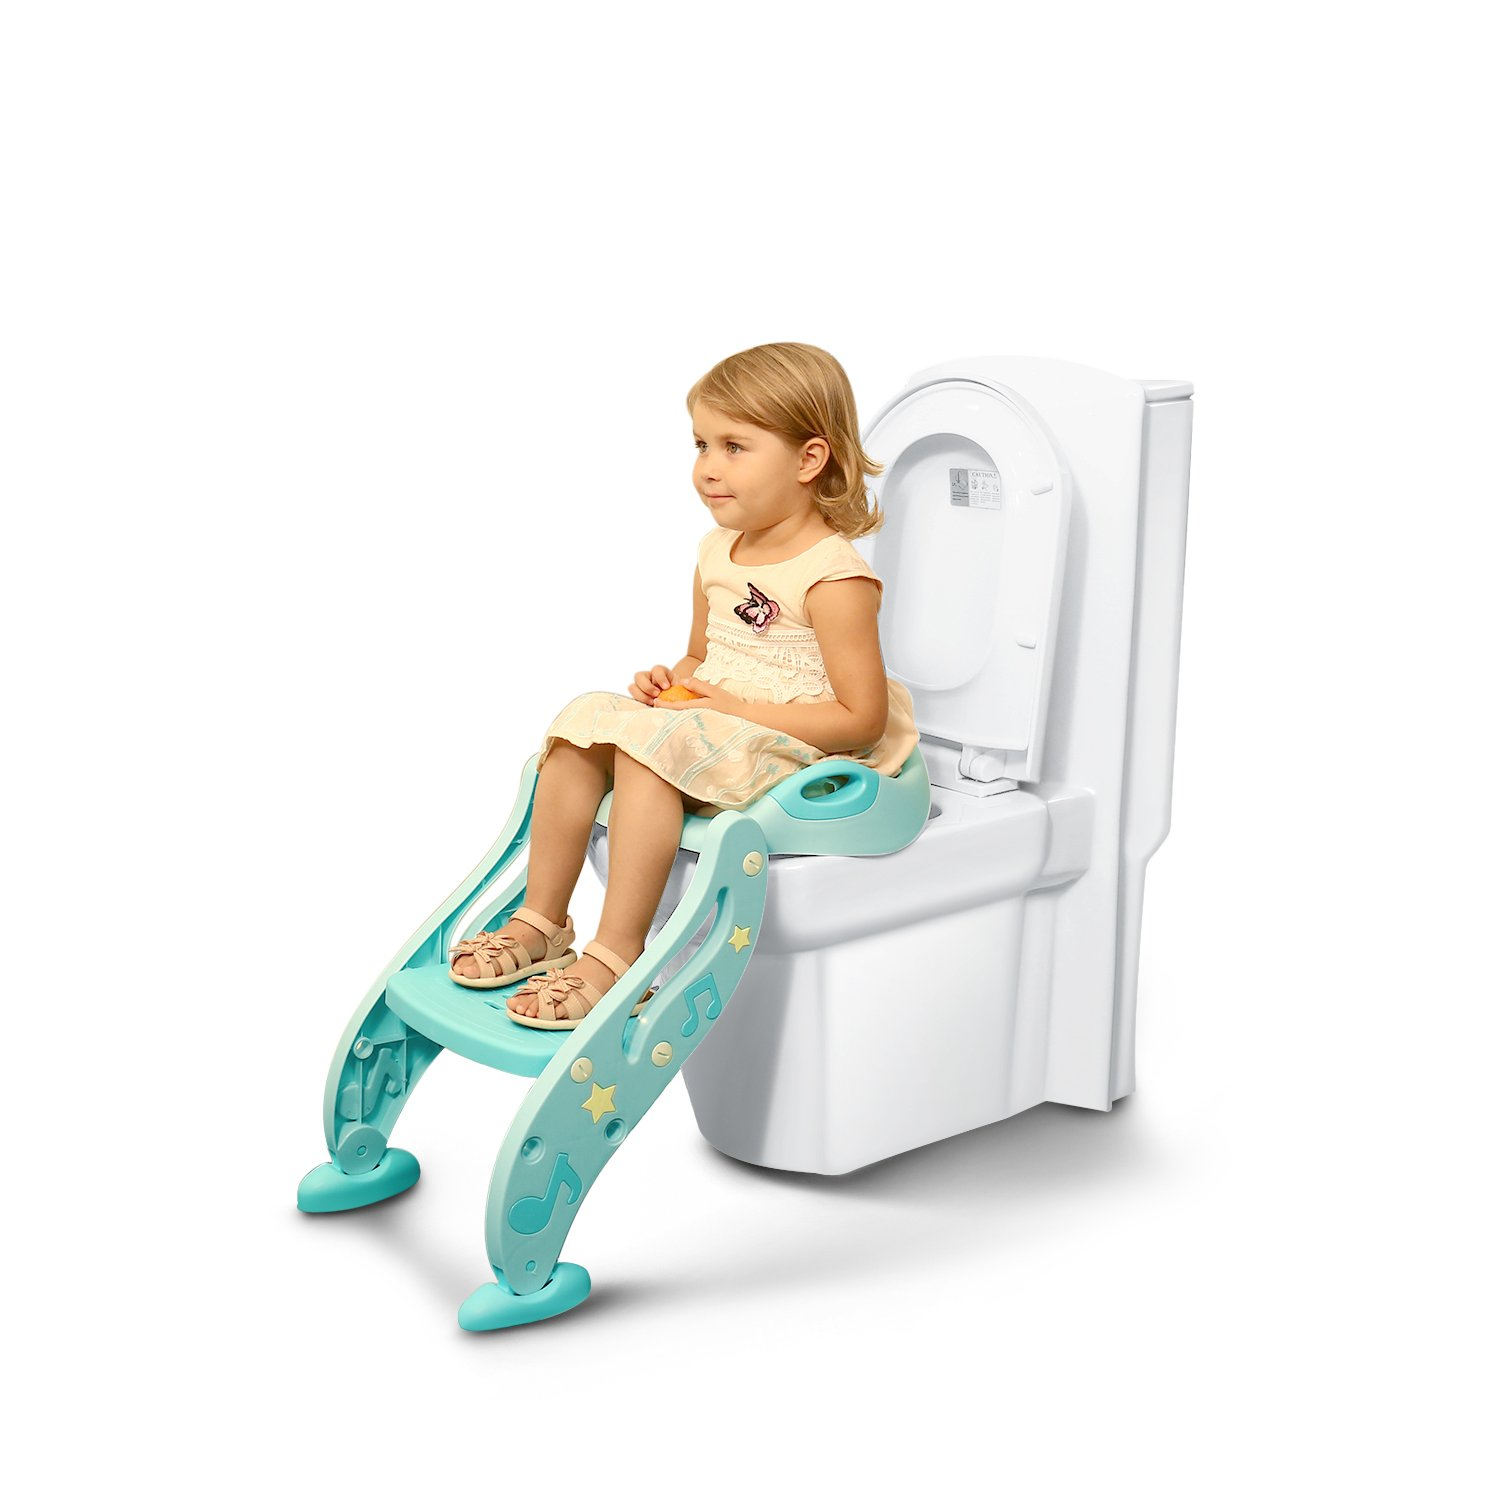 9bb1df7797a62 KIDPAR Potty Training Seat for Kids Adjustable Toddler Toilet Potty Chair  with Sturdy Non-Slip